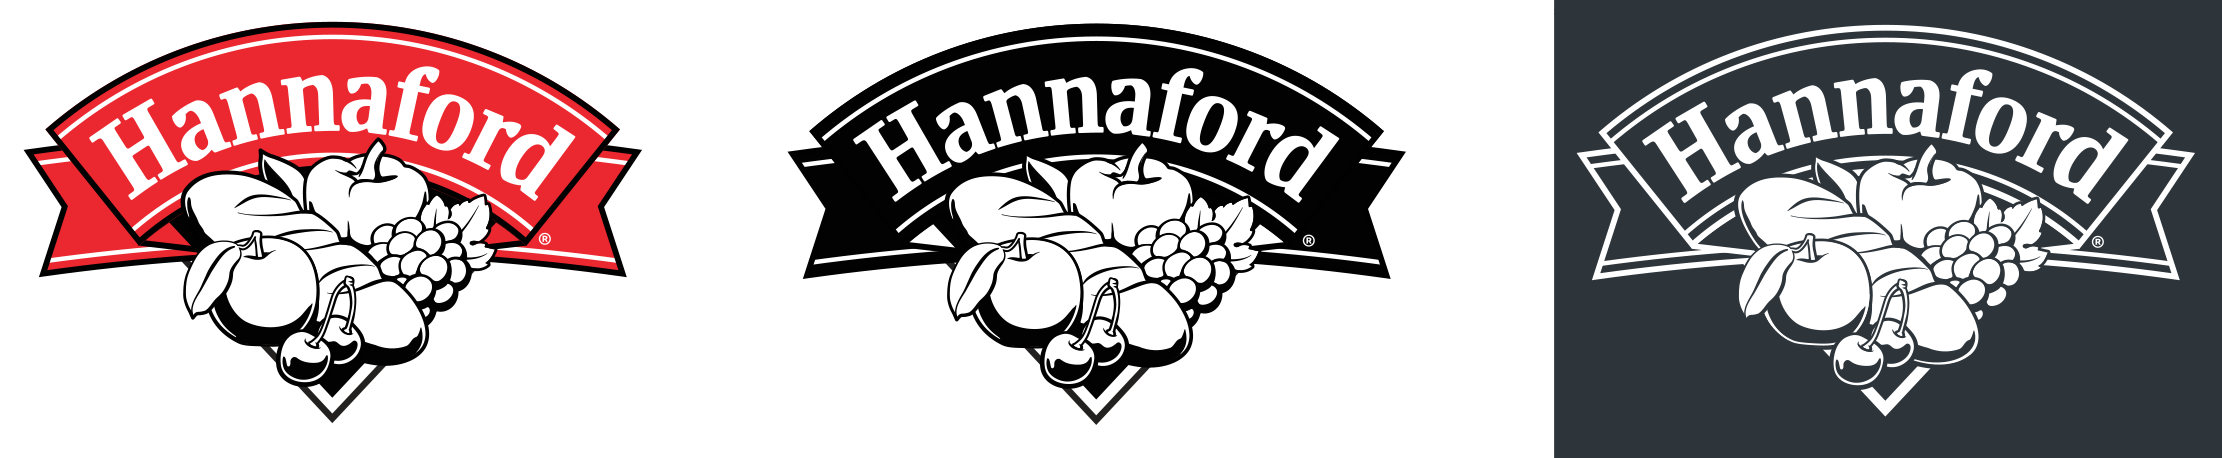 Hannaford_reverse.png